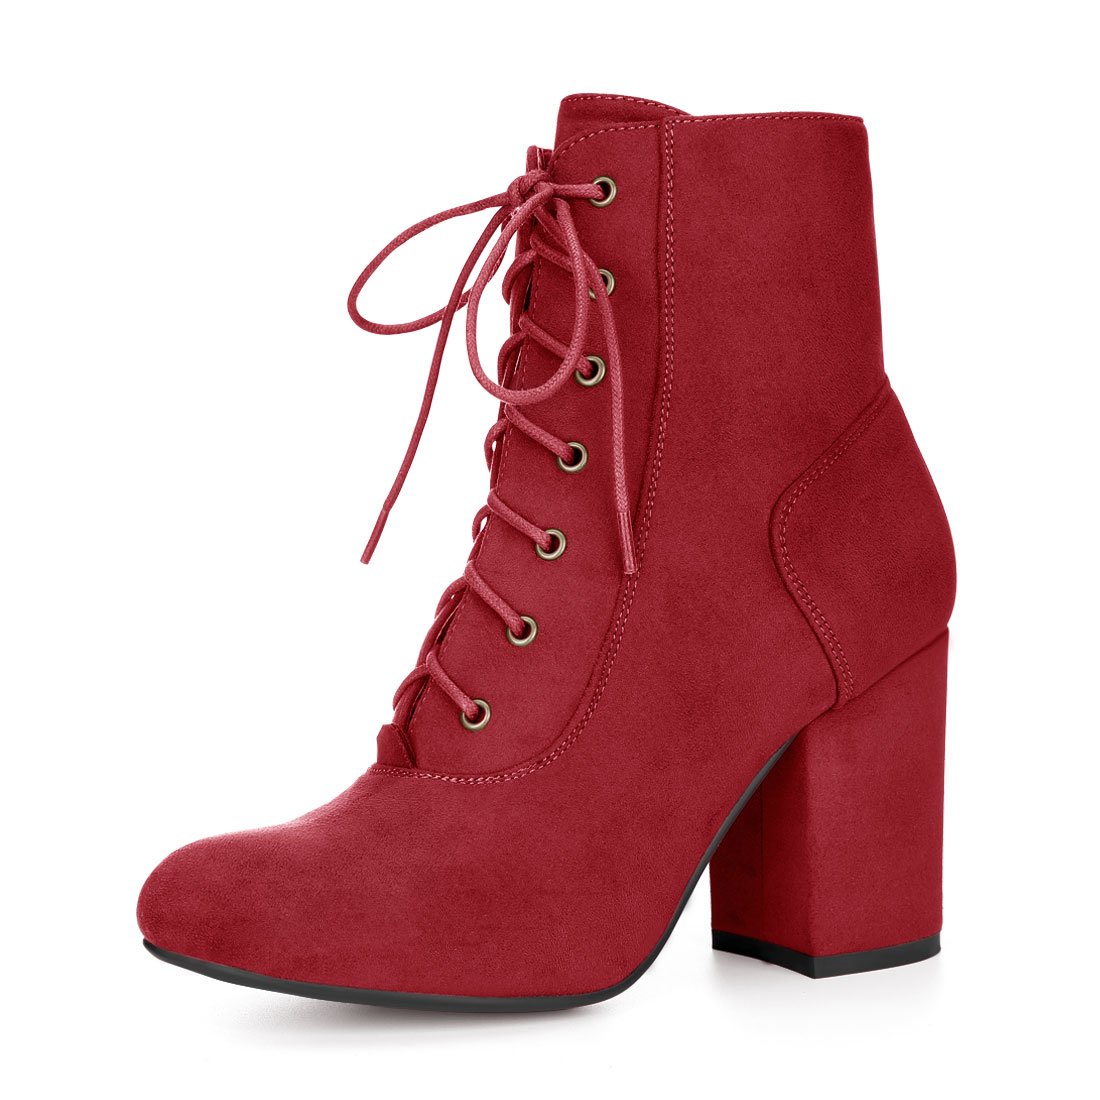 Allegra K Women Round Toe Chunky High Heel Lace Up Booties Red US 9